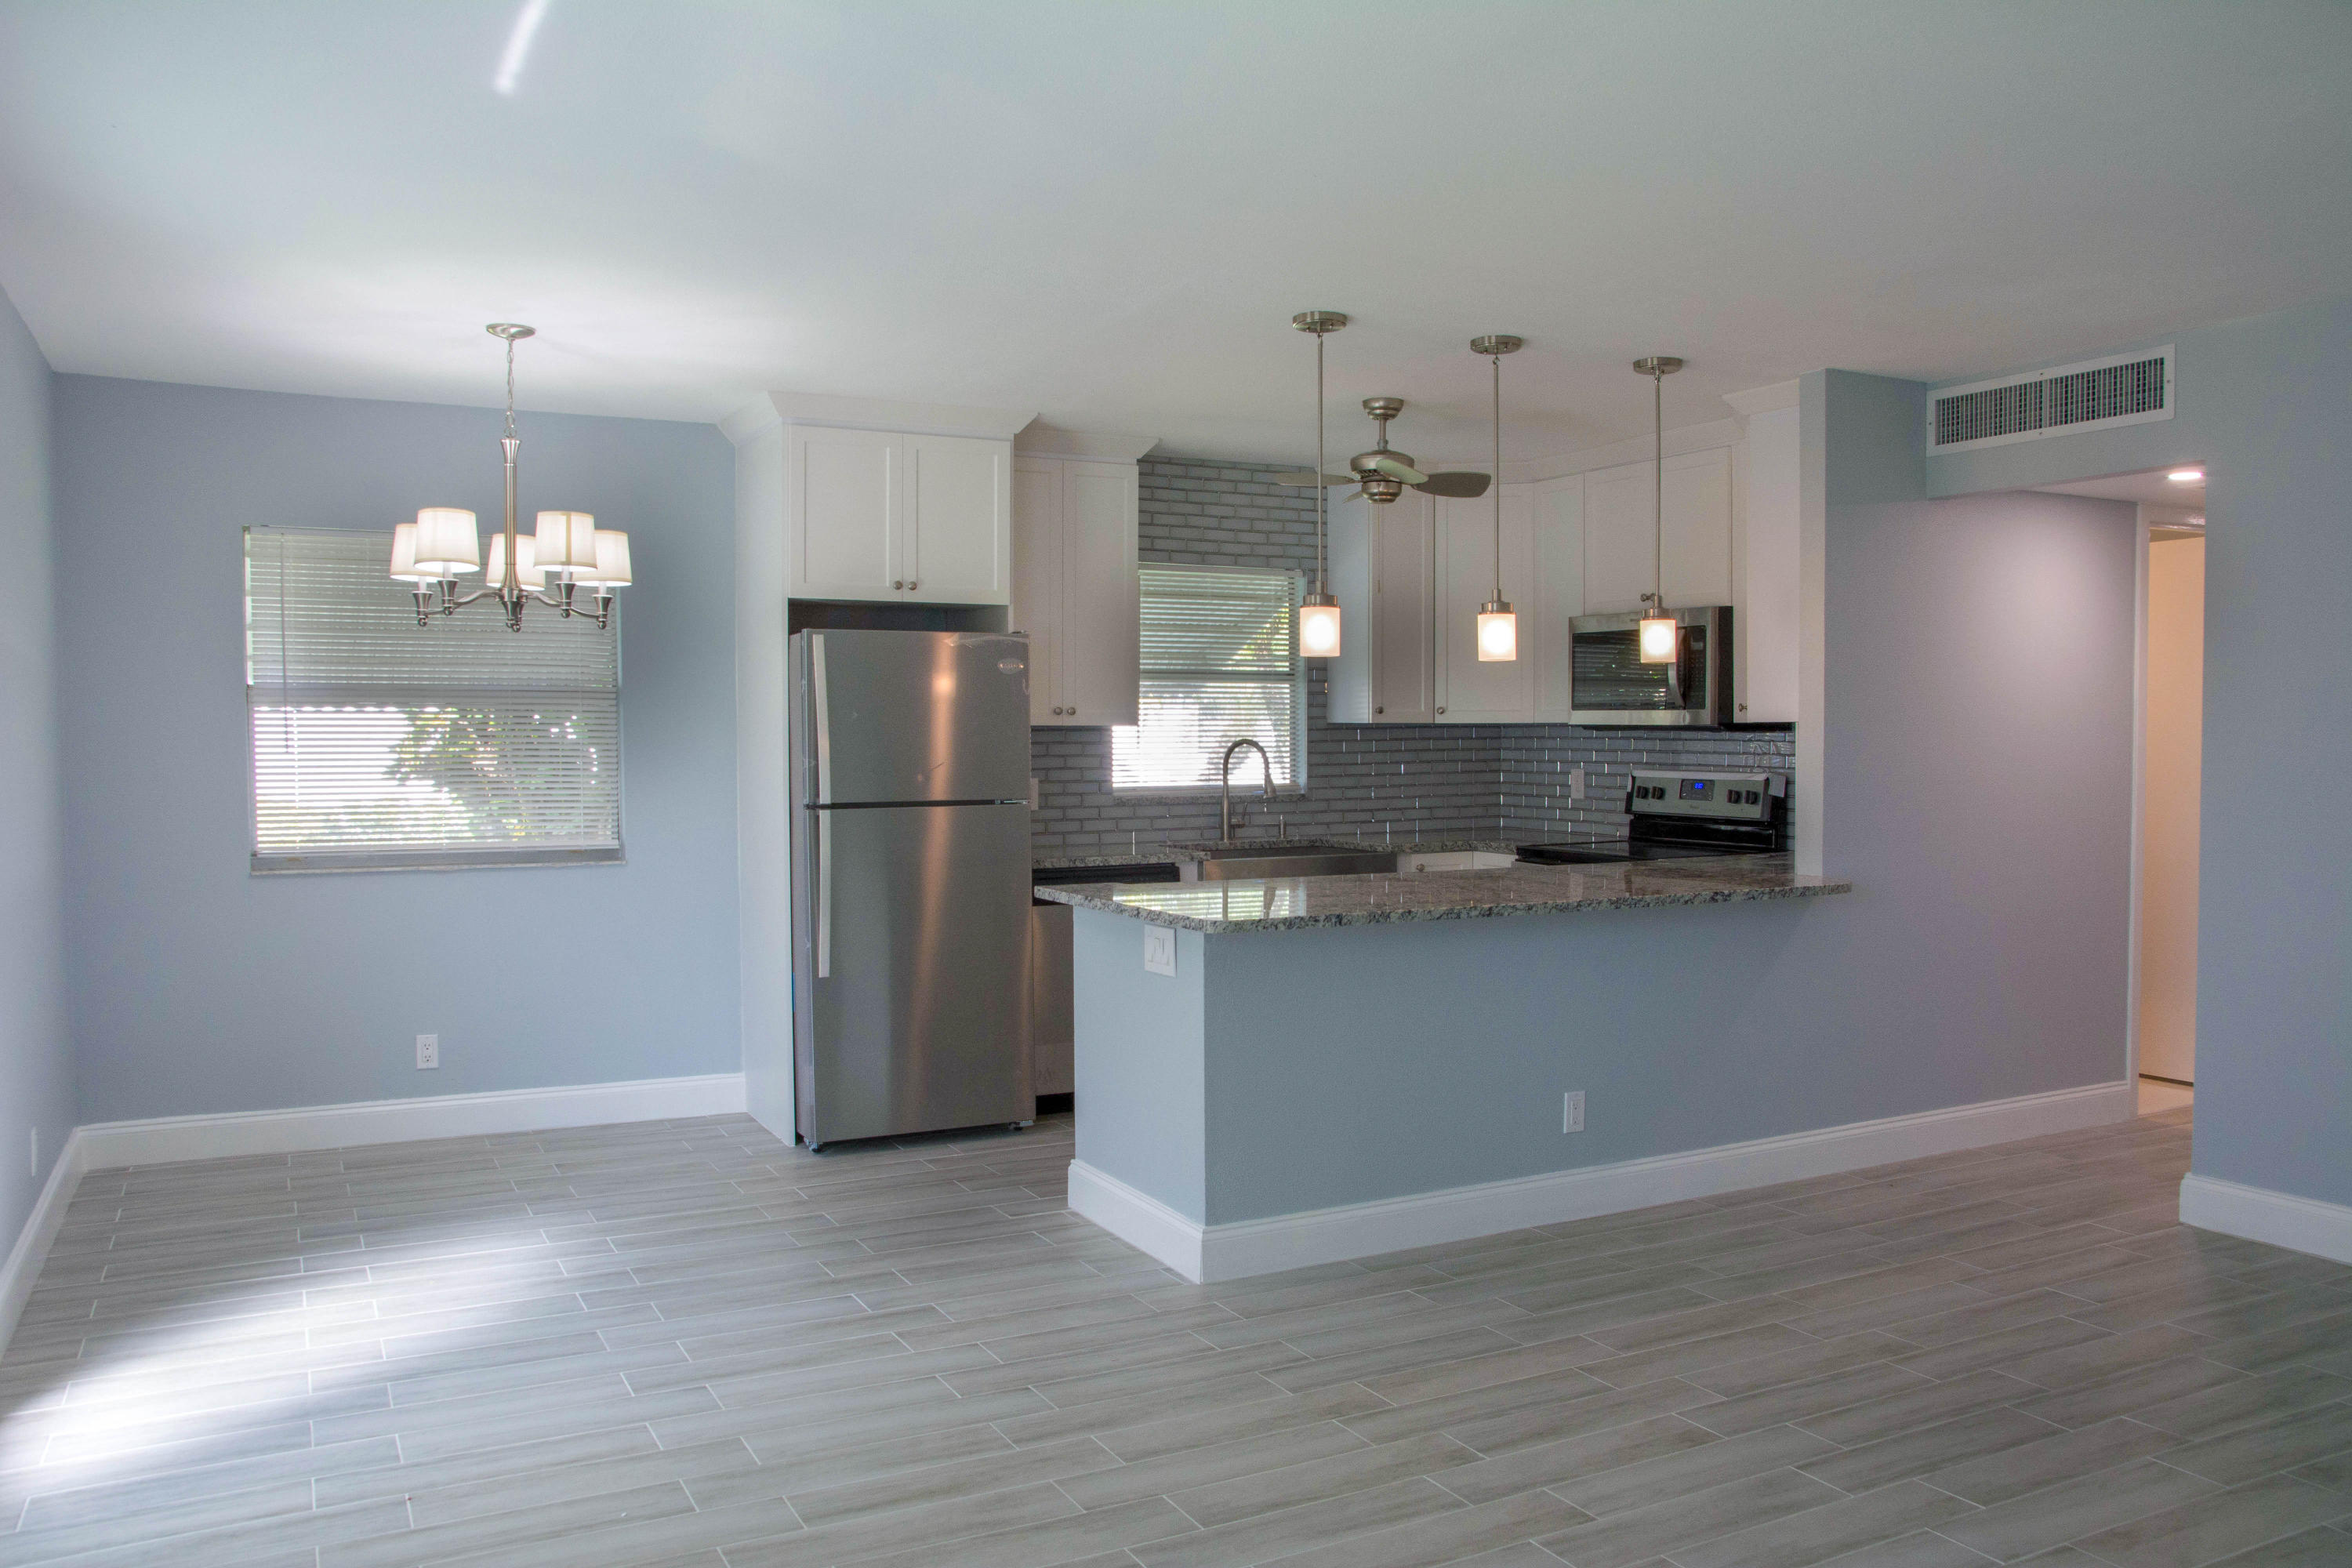 136 Waterford F, Delray Beach, Florida 33446, 2 Bedrooms Bedrooms, ,2 BathroomsBathrooms,Condo/Coop,For Sale,Kings Point,Waterford F,1,RX-10511755